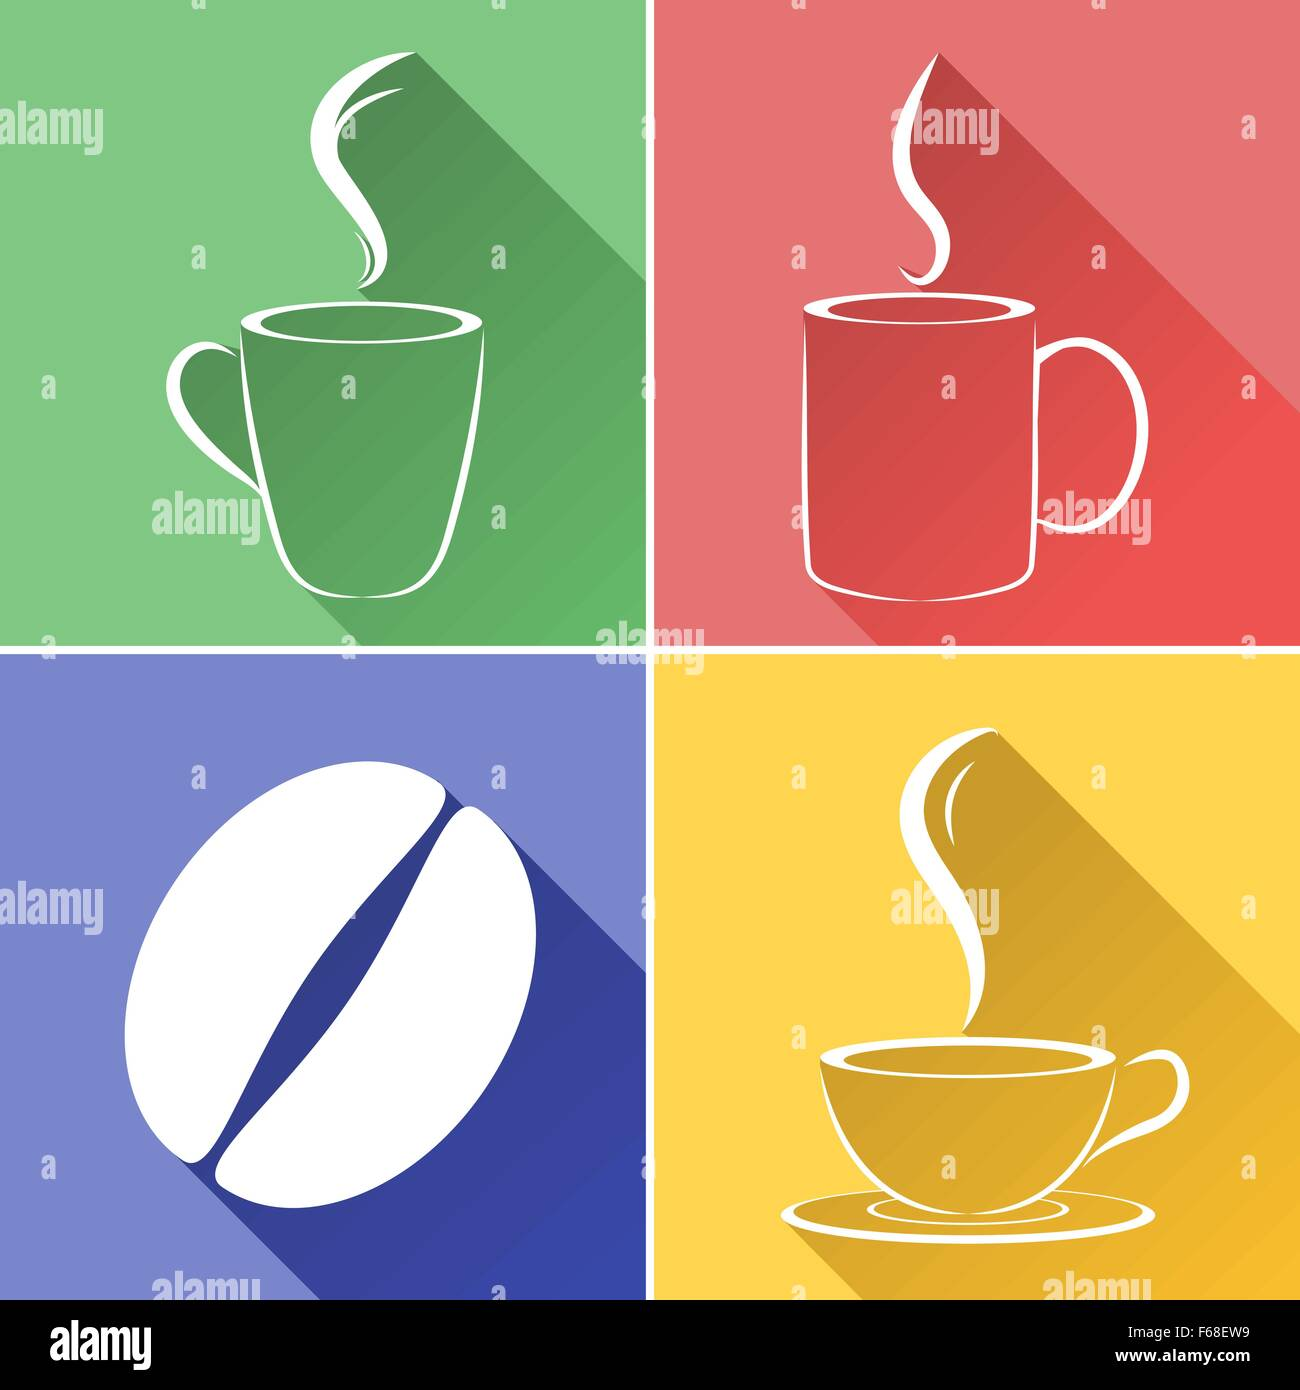 Coffee Bean And Cup Graphic Design Stock Vector Art Illustration